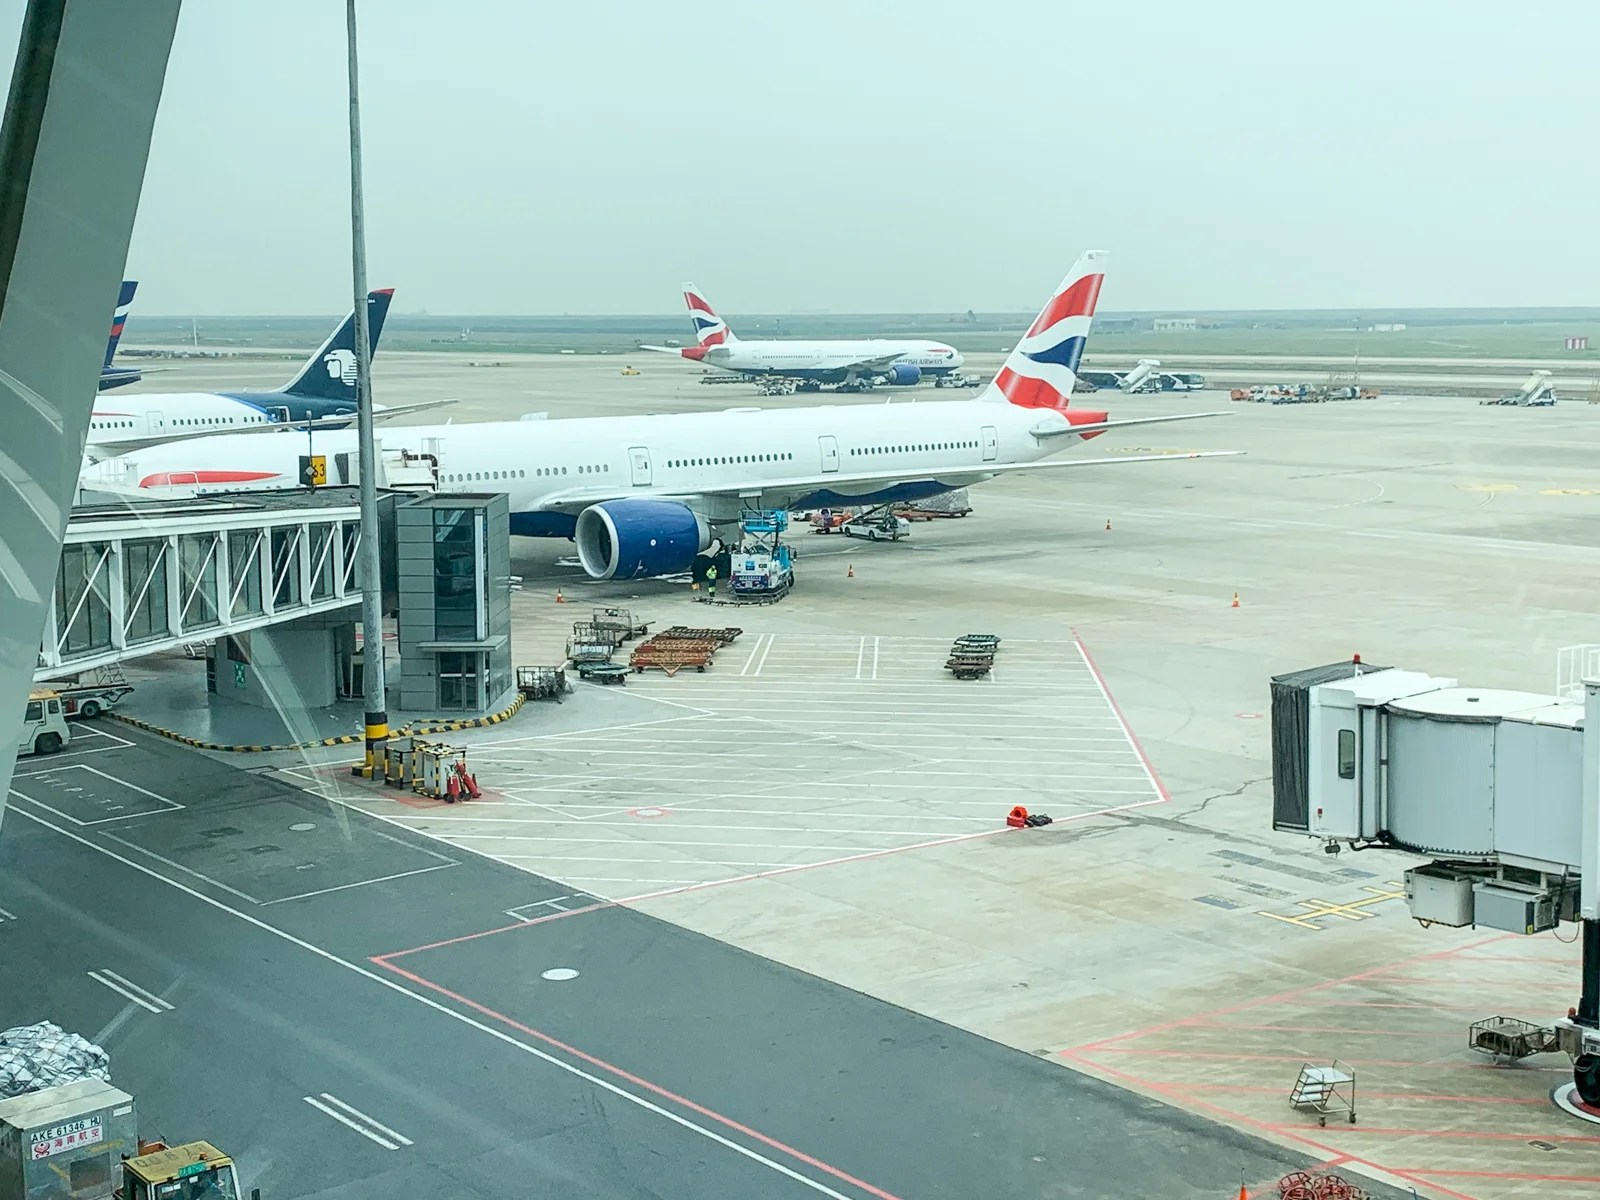 Review: British Airways First Class on the 777, PVG to LHRBritish Airways First Class 777 Bed